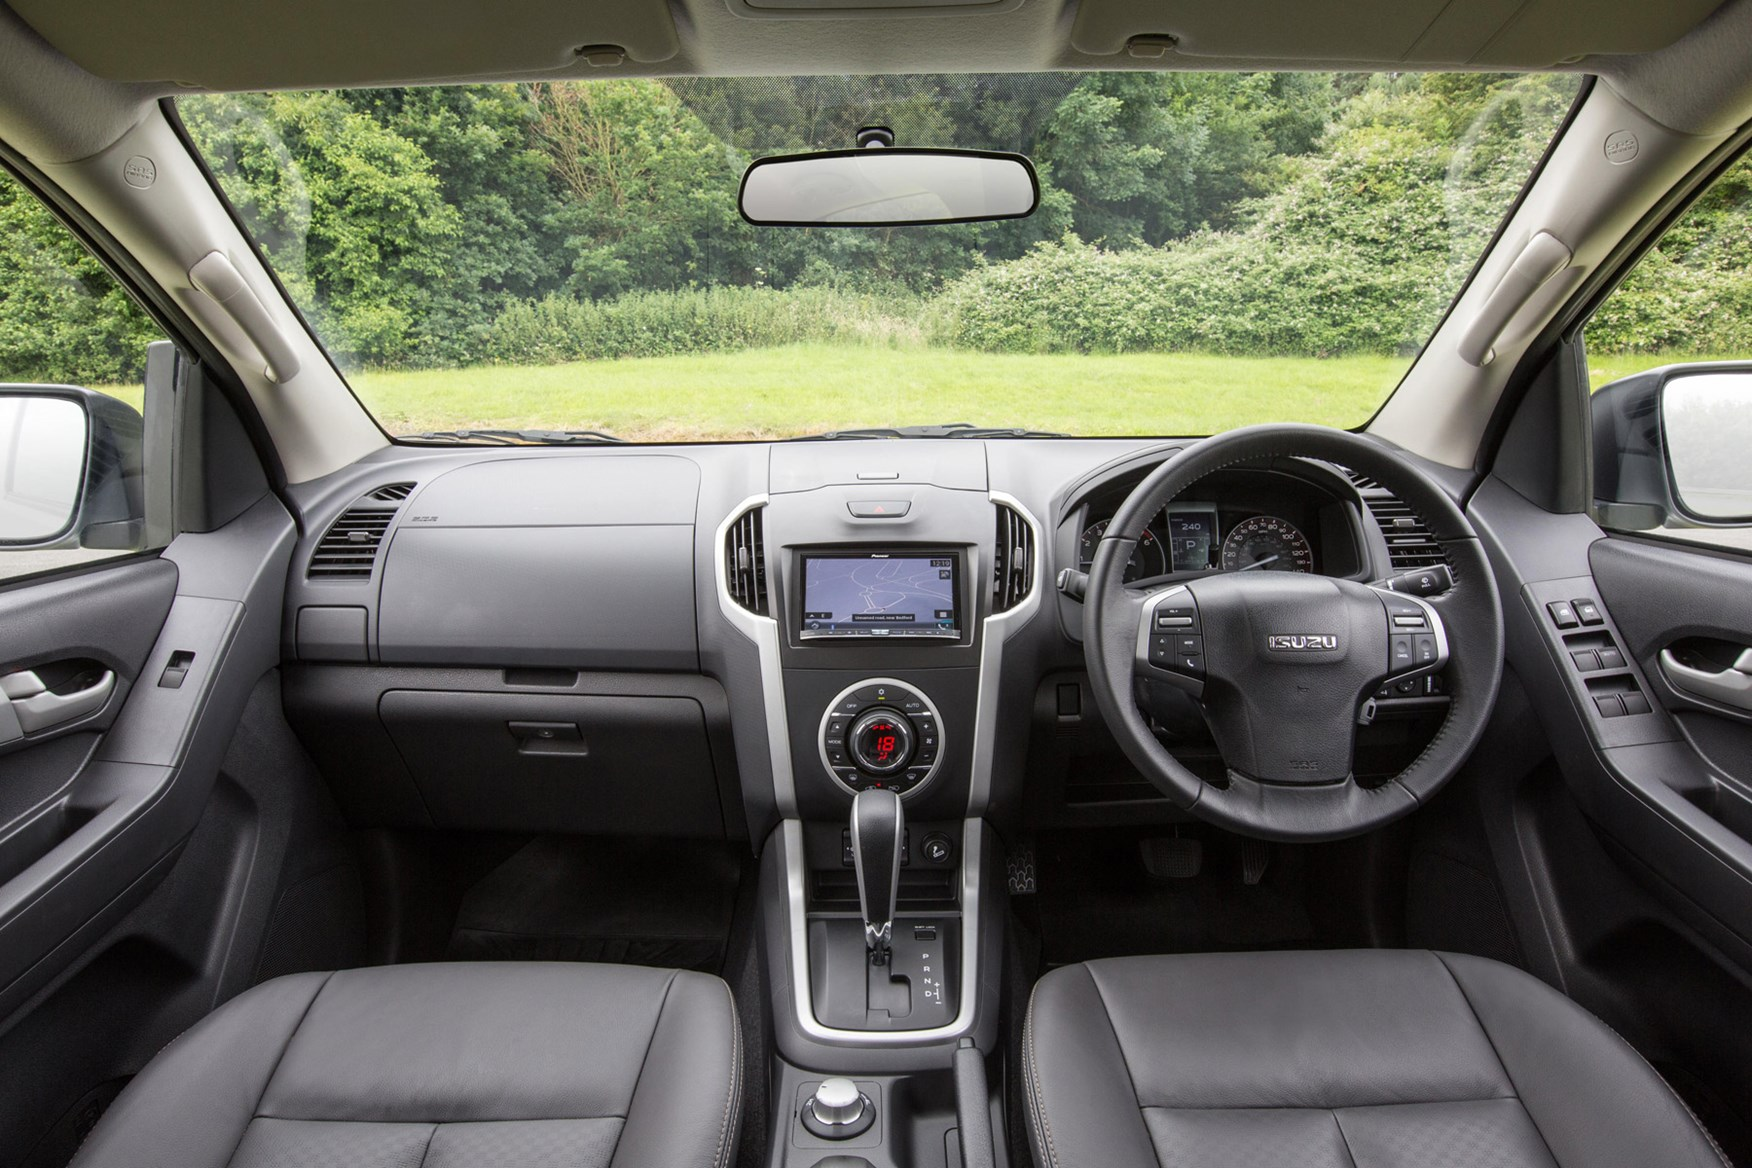 Isuzu D-Max full review on Parkers Vans - cabin interior